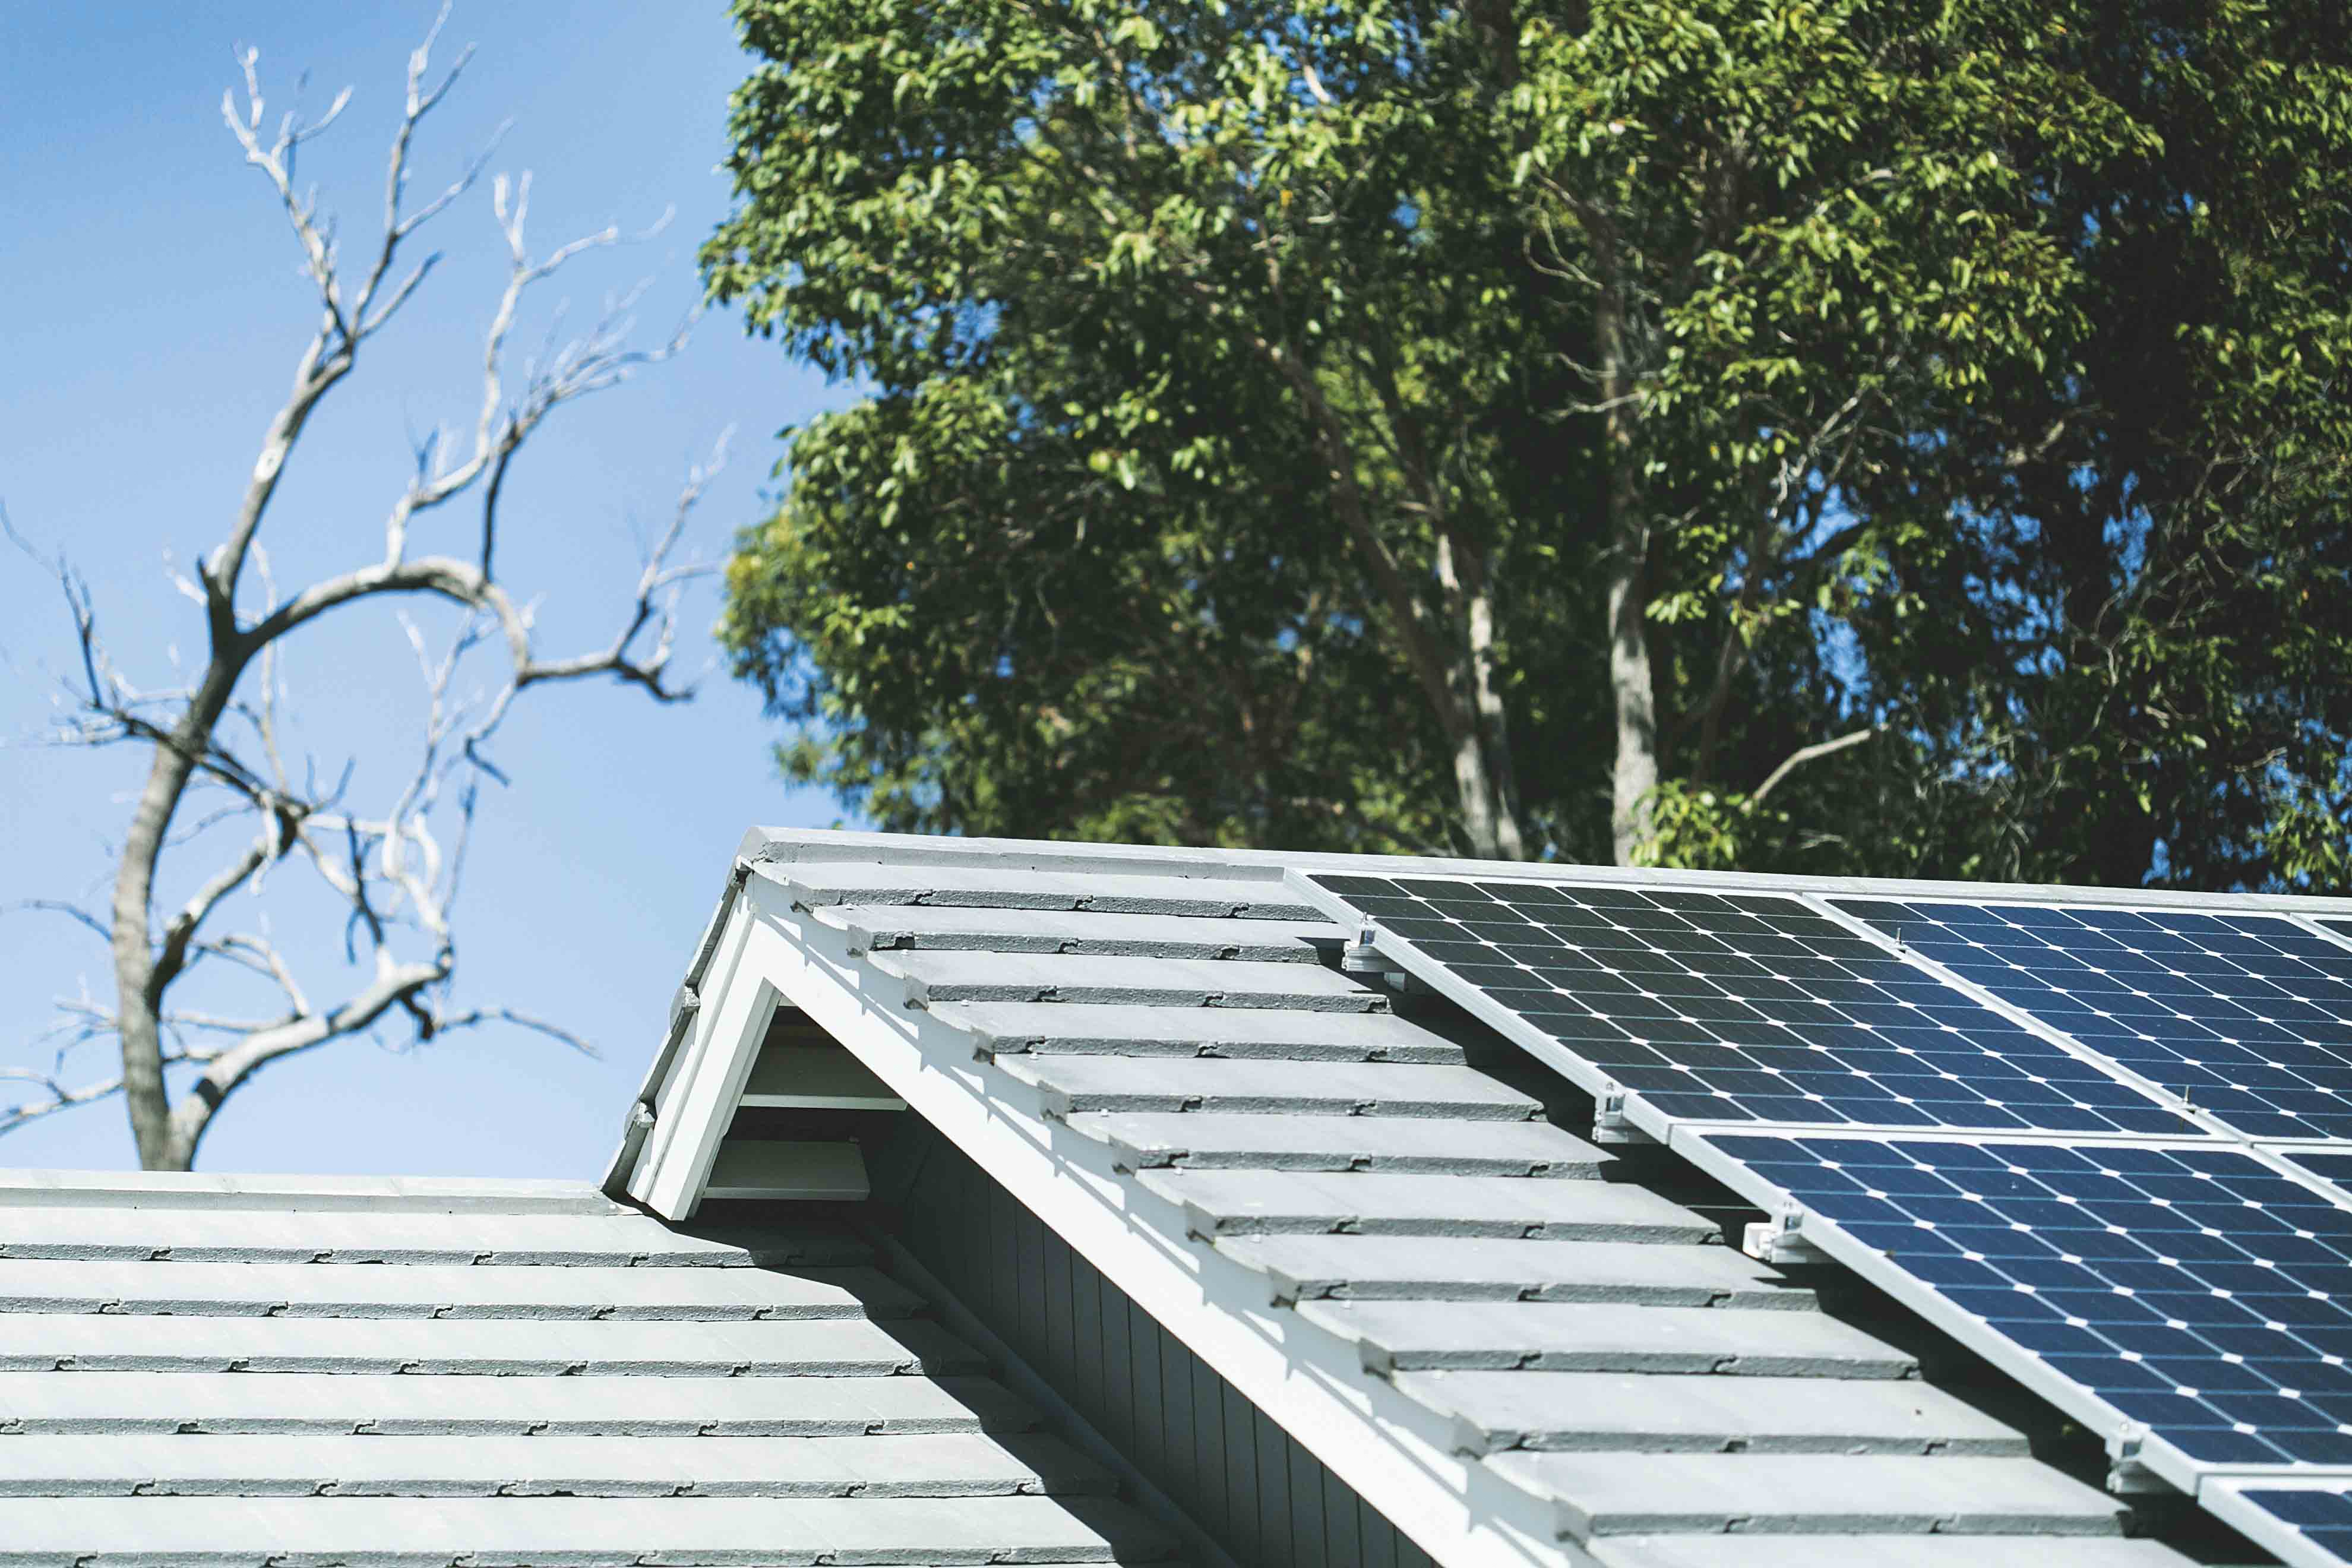 Installing Solar during a recession